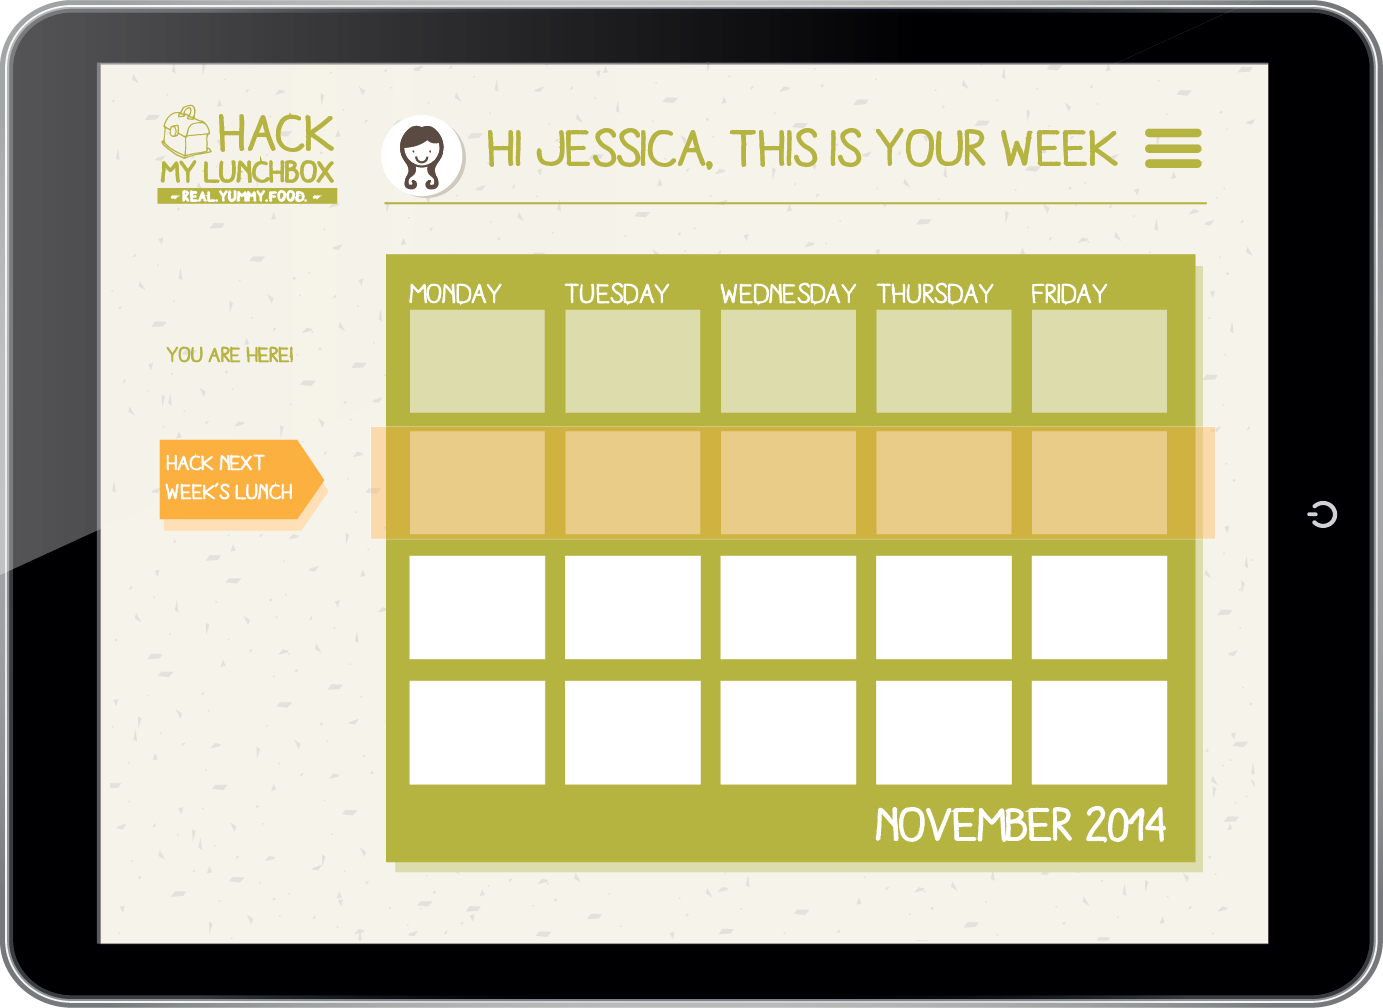 MONTHLY CALENDAR VIEW -  The user has an overview of the month, highlighting the current week in green and the next week in orange. The arrow triggers to click and go hack the lunches.